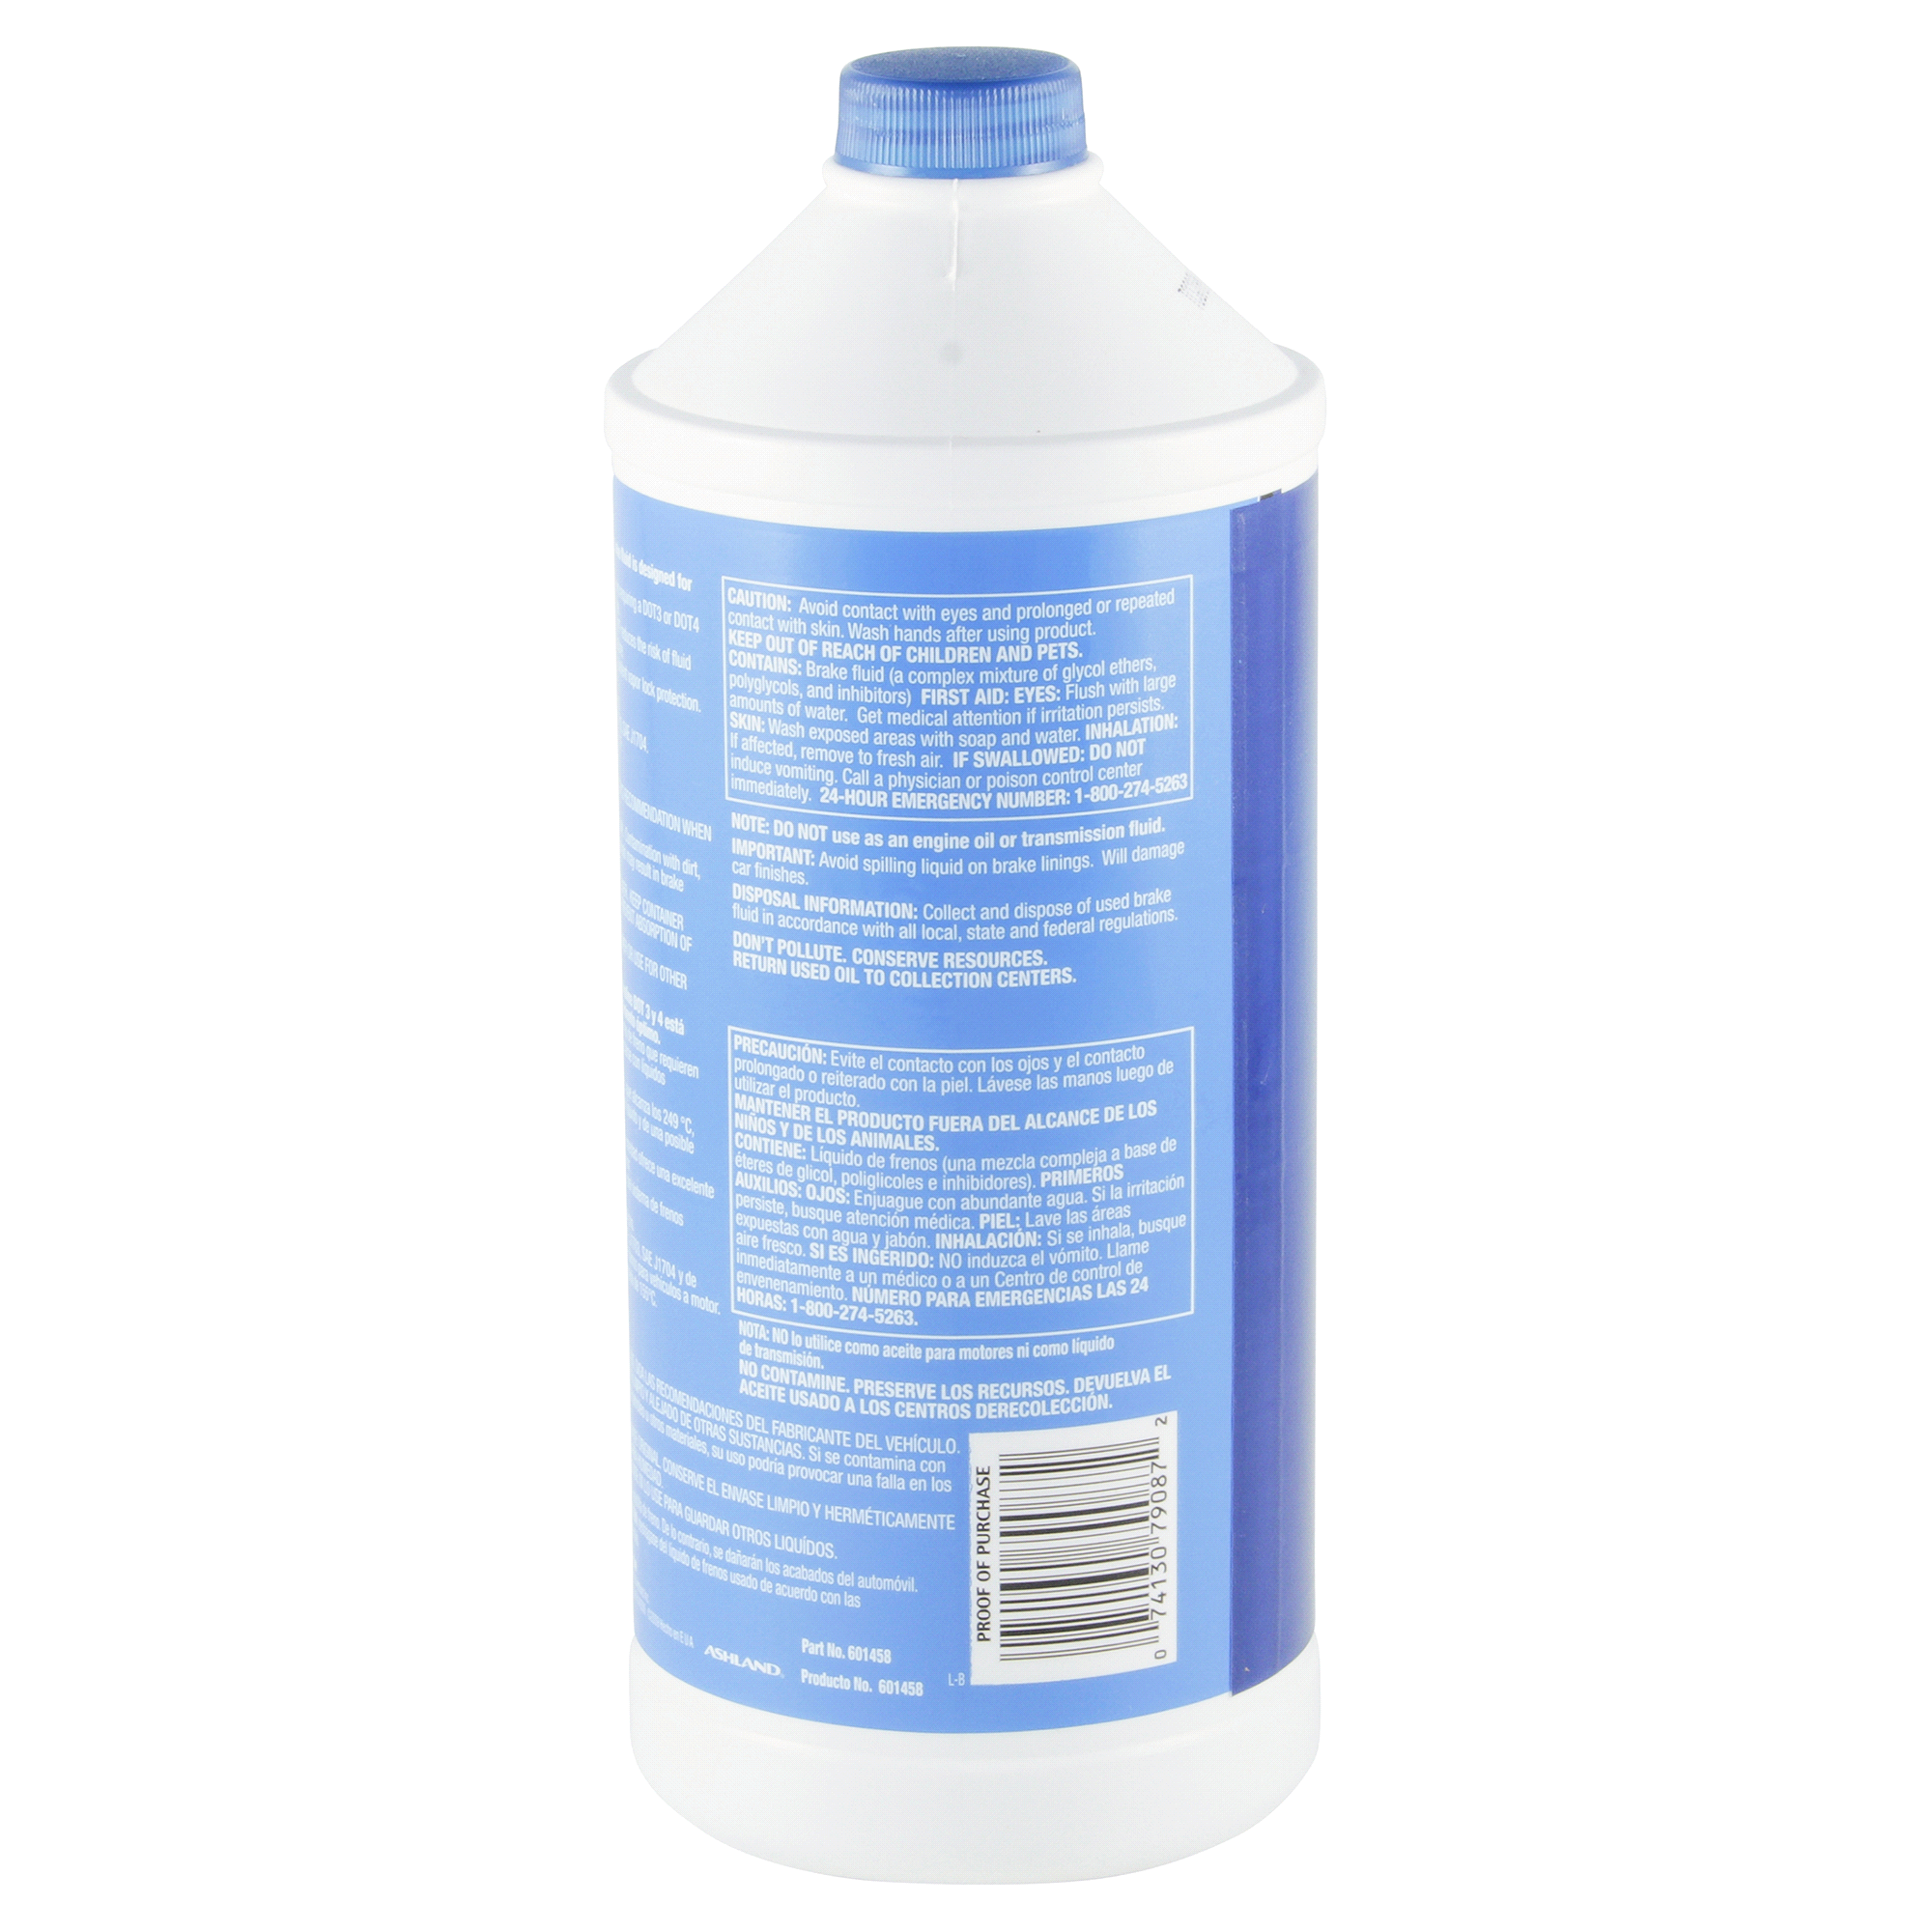 Valvoline Dot 3 & 4 Brake Fluid 32 oz | Meijer.com